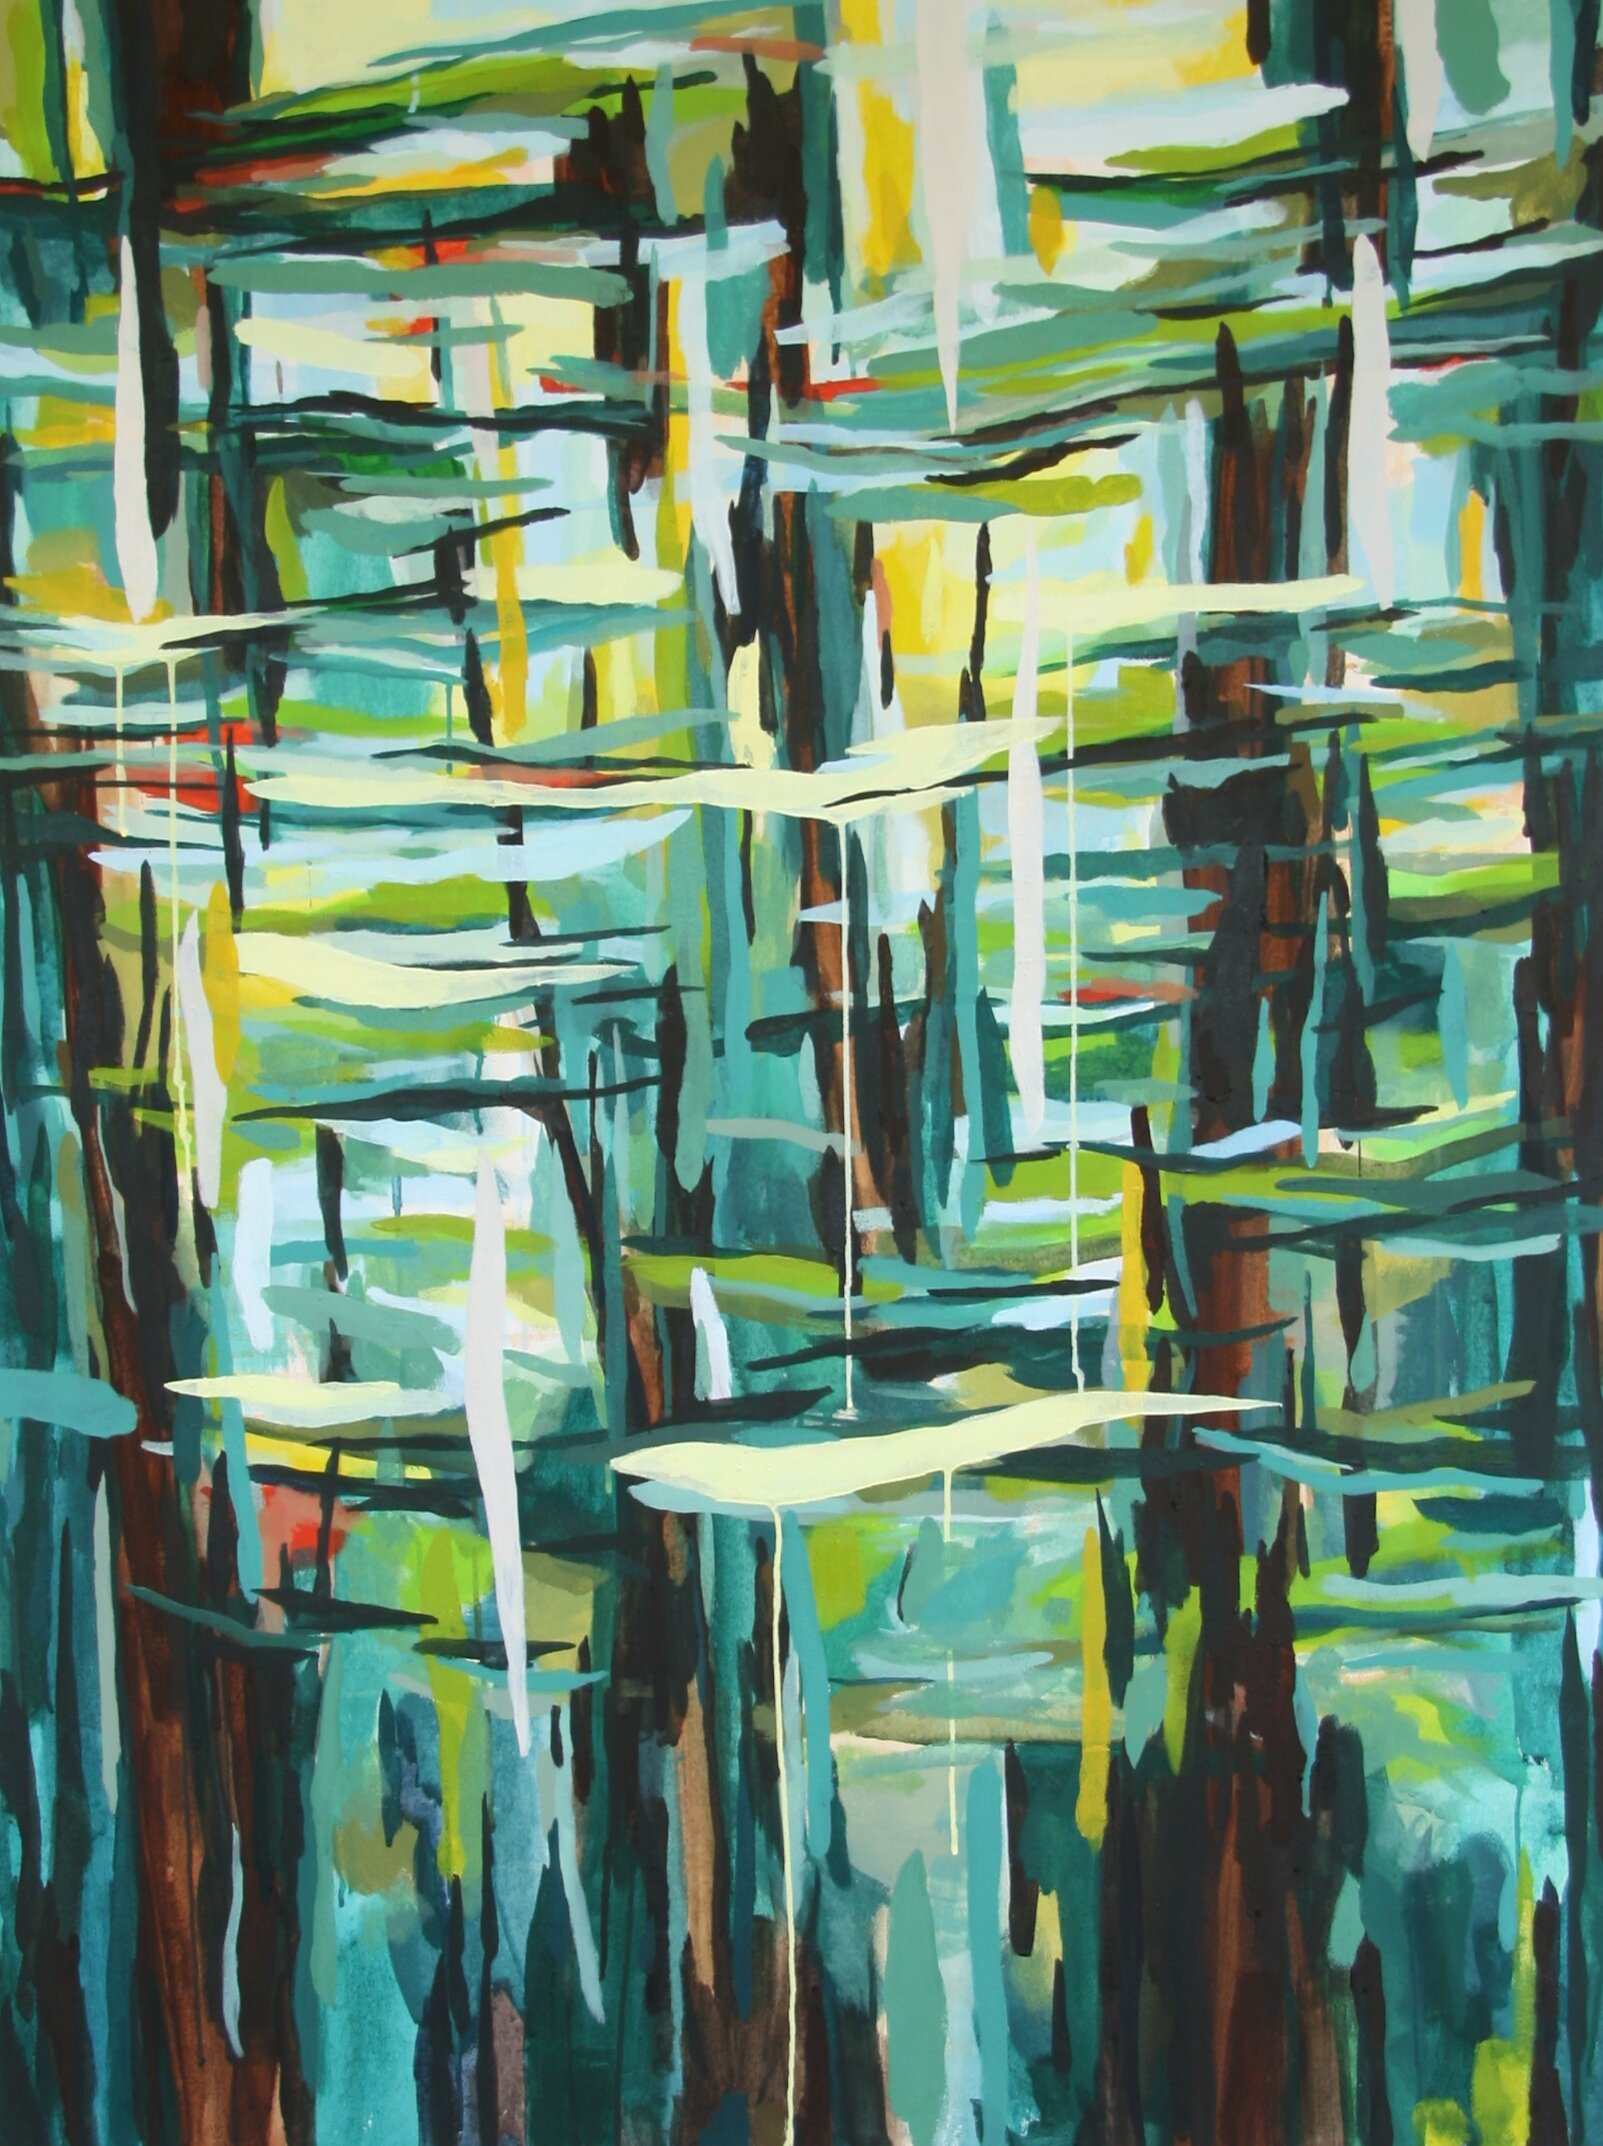 """'Filter II'  2014  36"""" x 48""""  water soluble oil on canvas  sold"""